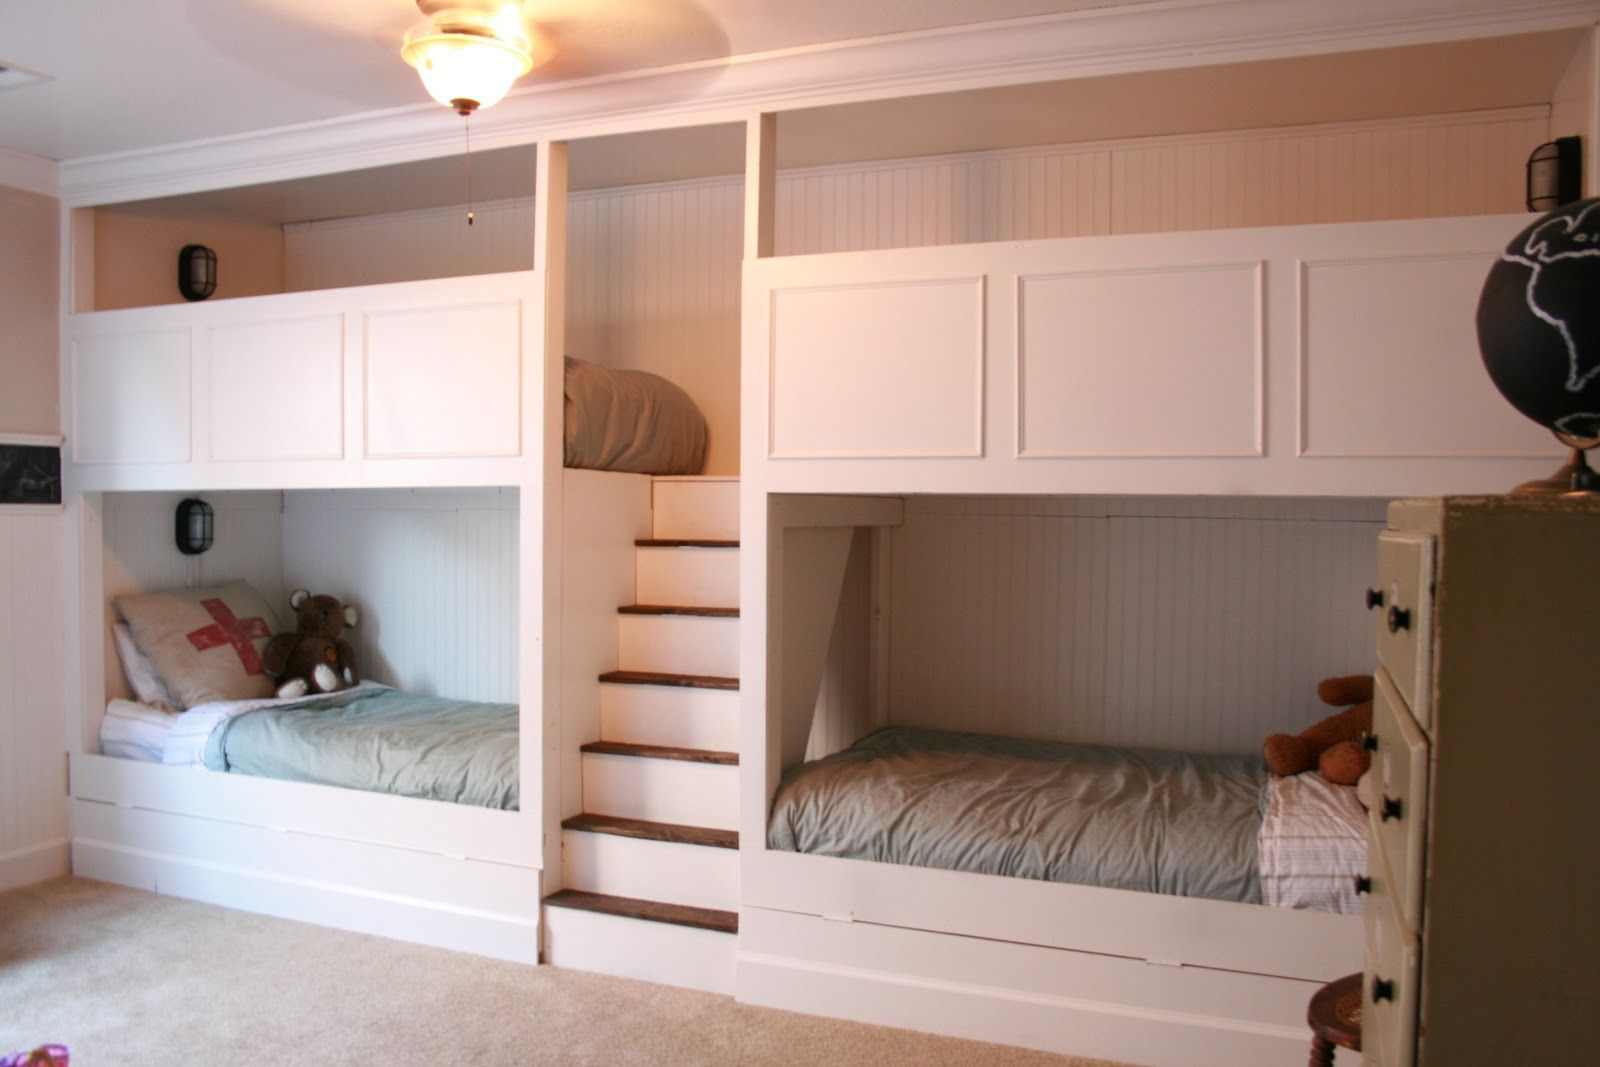 bunk beds for interior design ideas for bedrooms check more